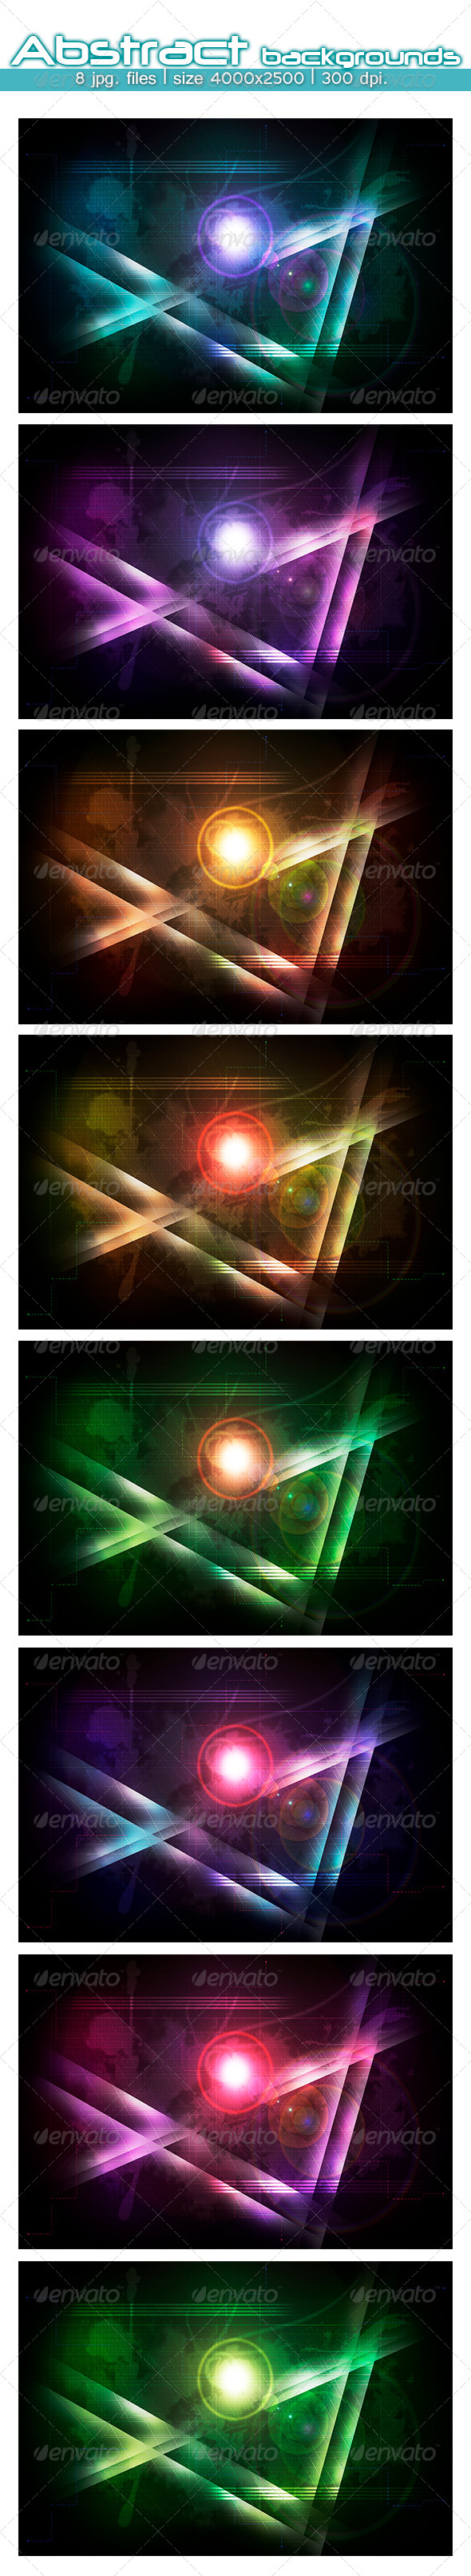 GraphicRiver Abstract Background 6439315